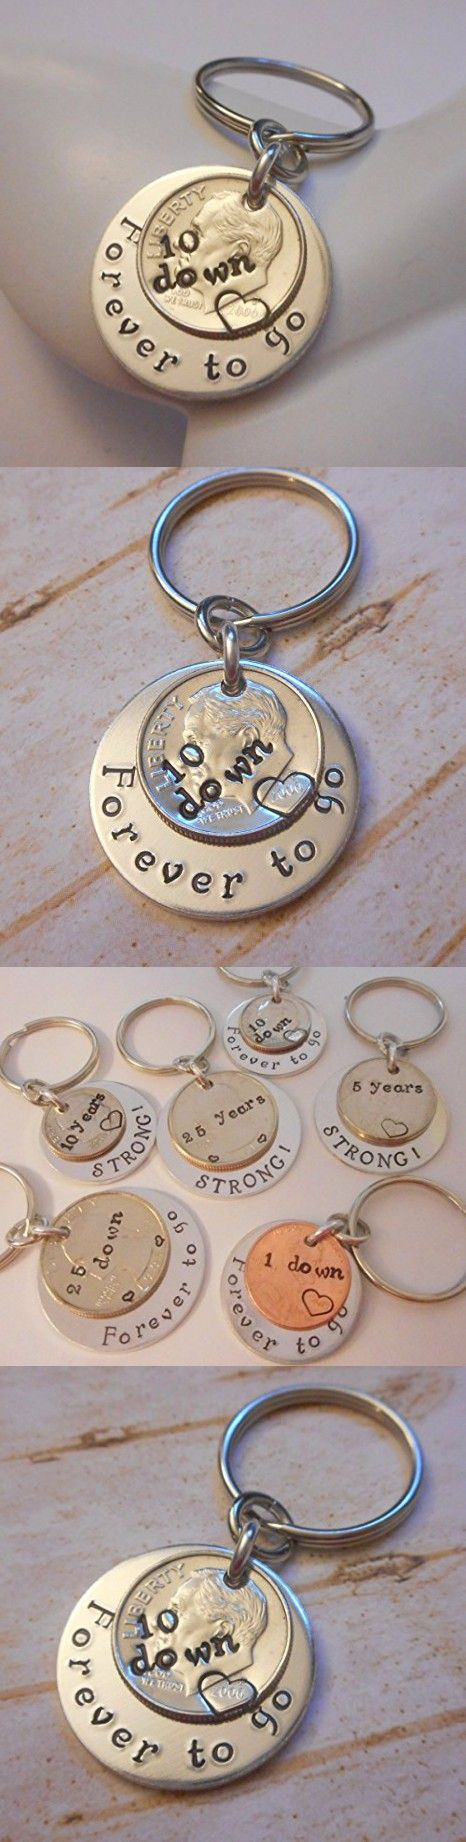 10 Down Forever To Go 2006 Year Dime Key Chain Wedding Anniversary Gift for Him or Her